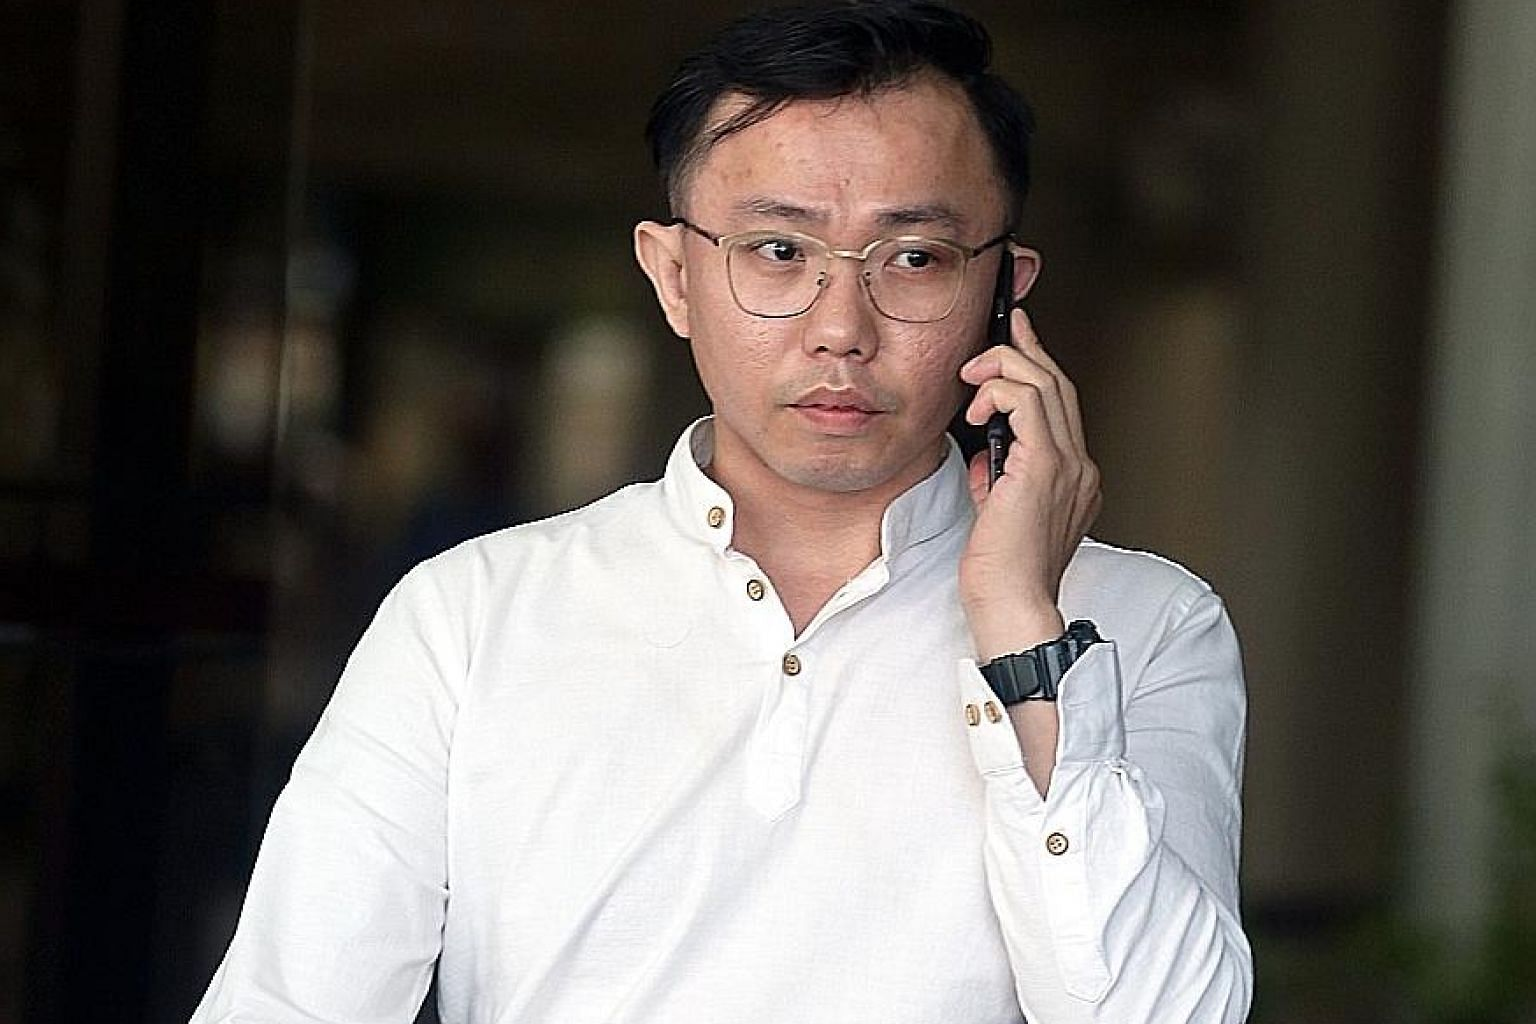 Tan Tong Han, 36, was sentenced yesterday to a week's jail for giving false information to a CPIB officer investigating the flow of funds in and out of Black Tidings.